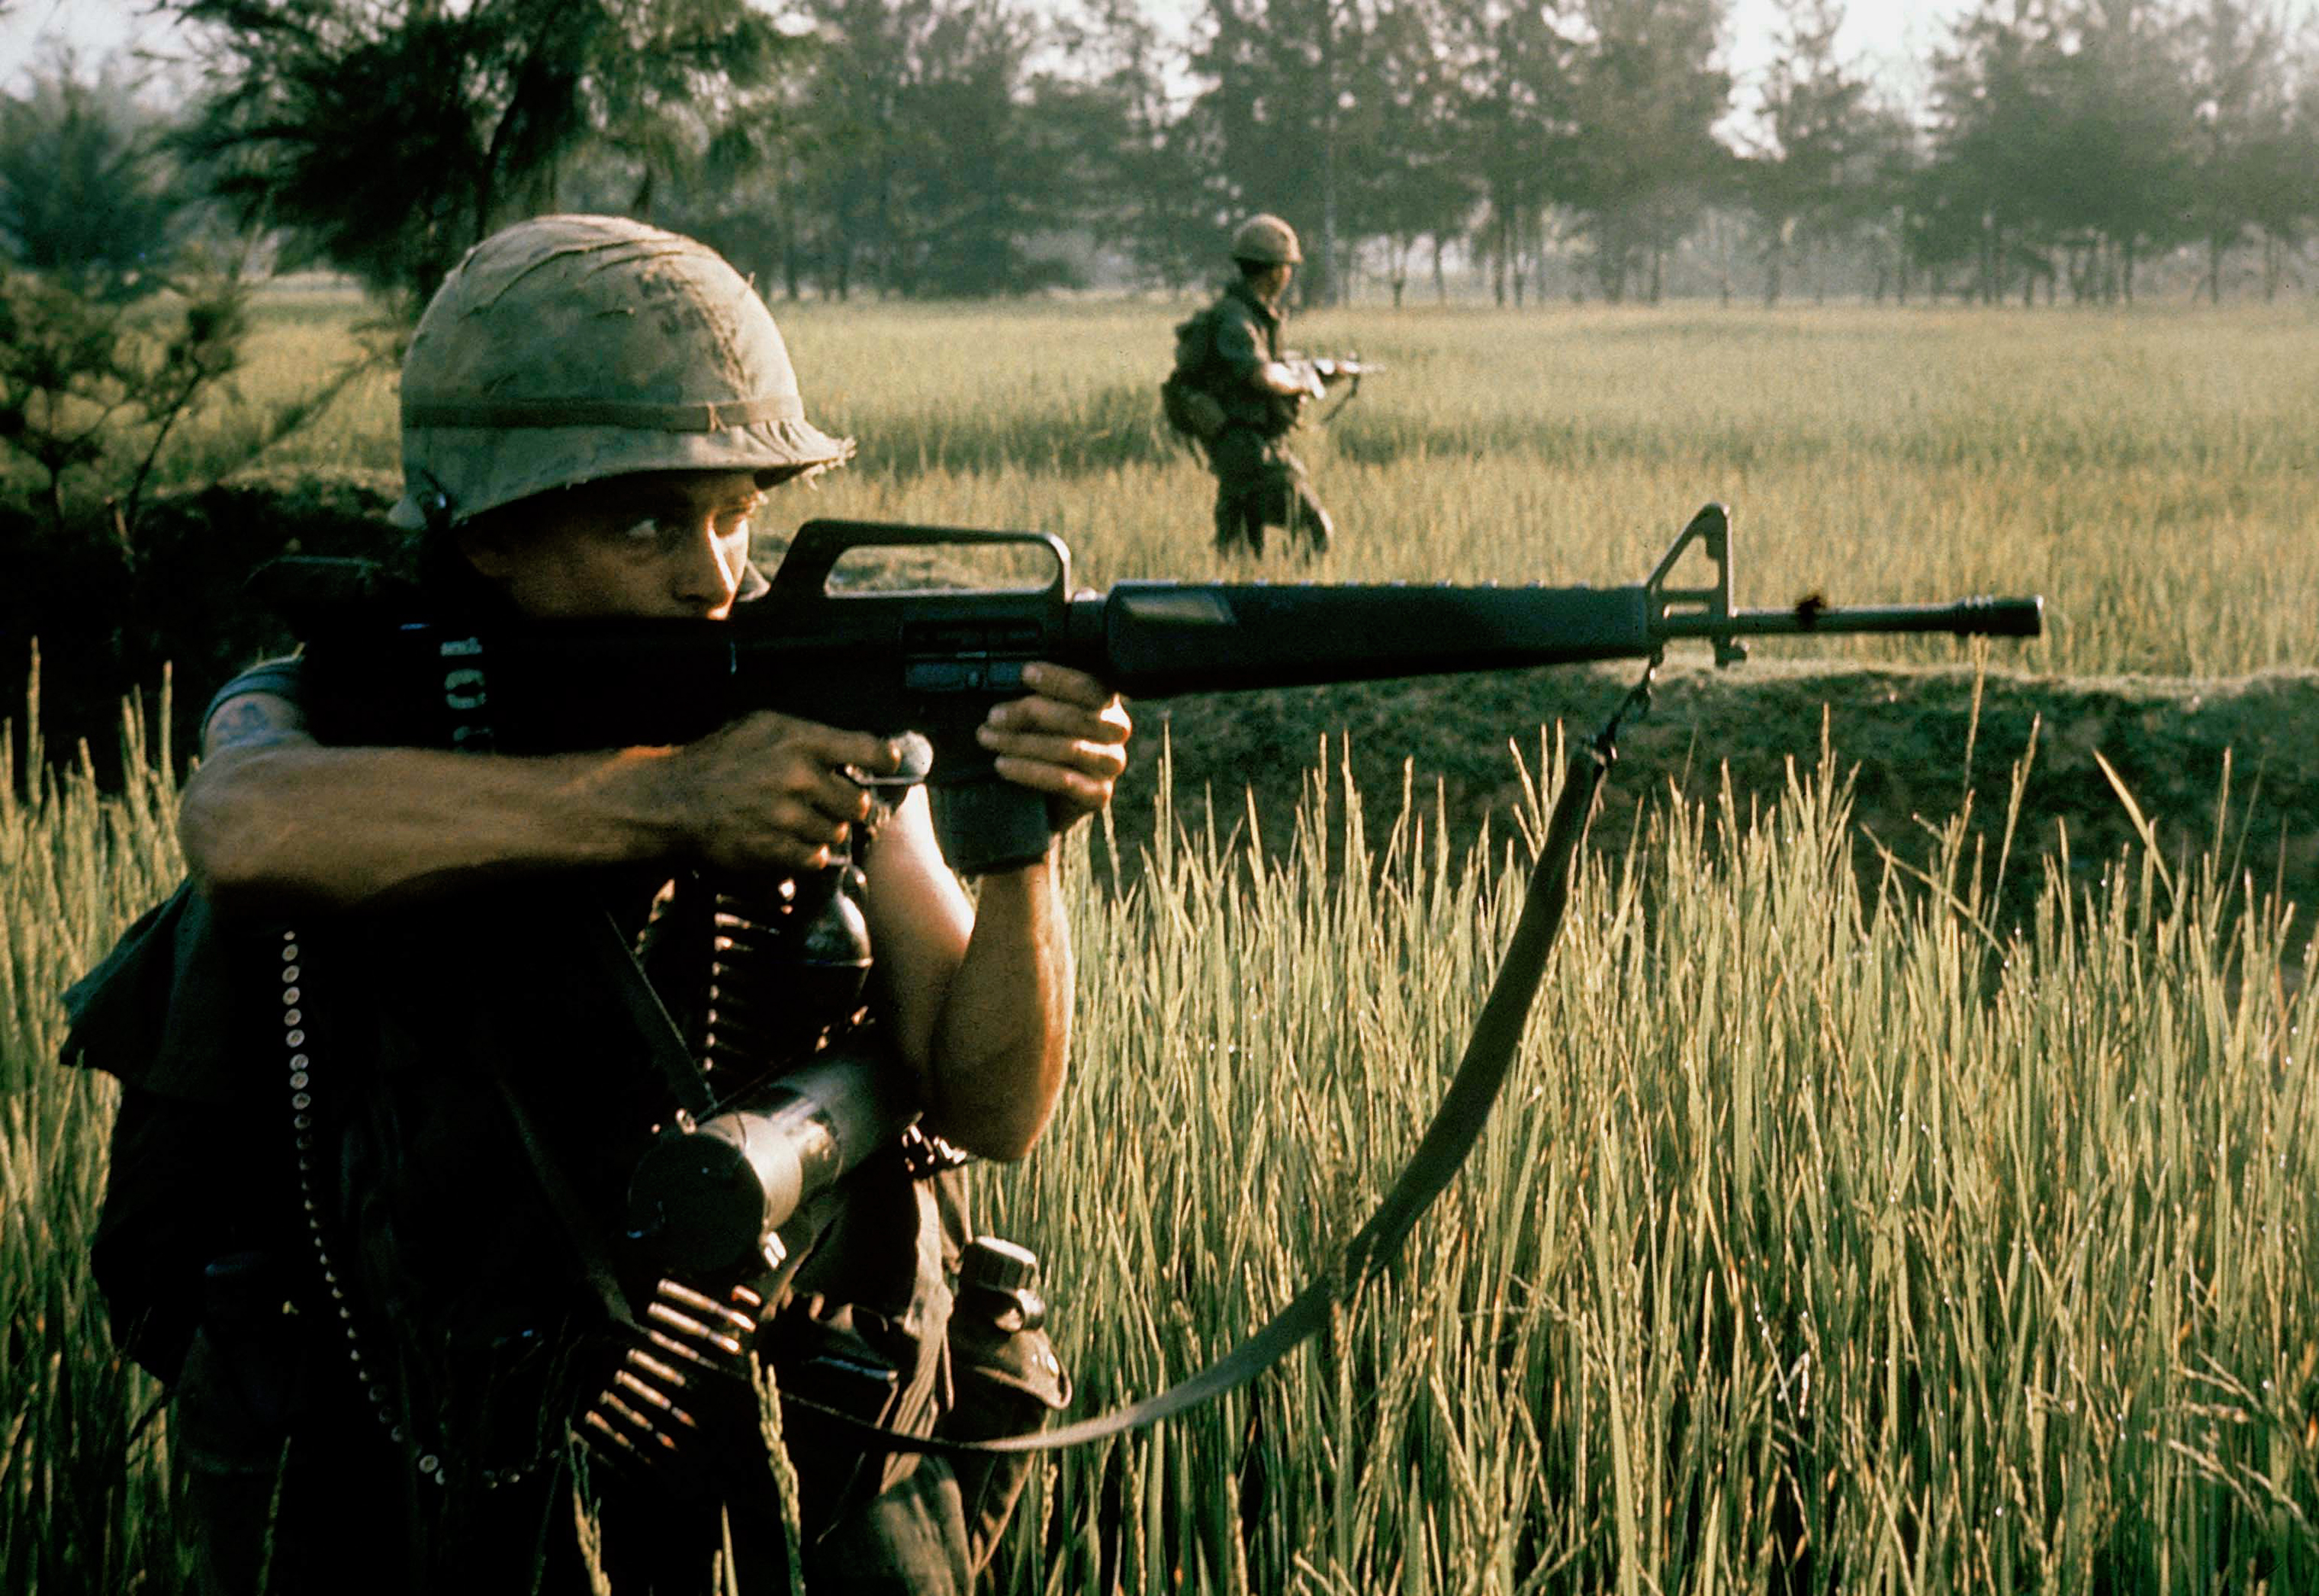 An American soldier fires his M16 rifle near My Lai on March 16, 1968.